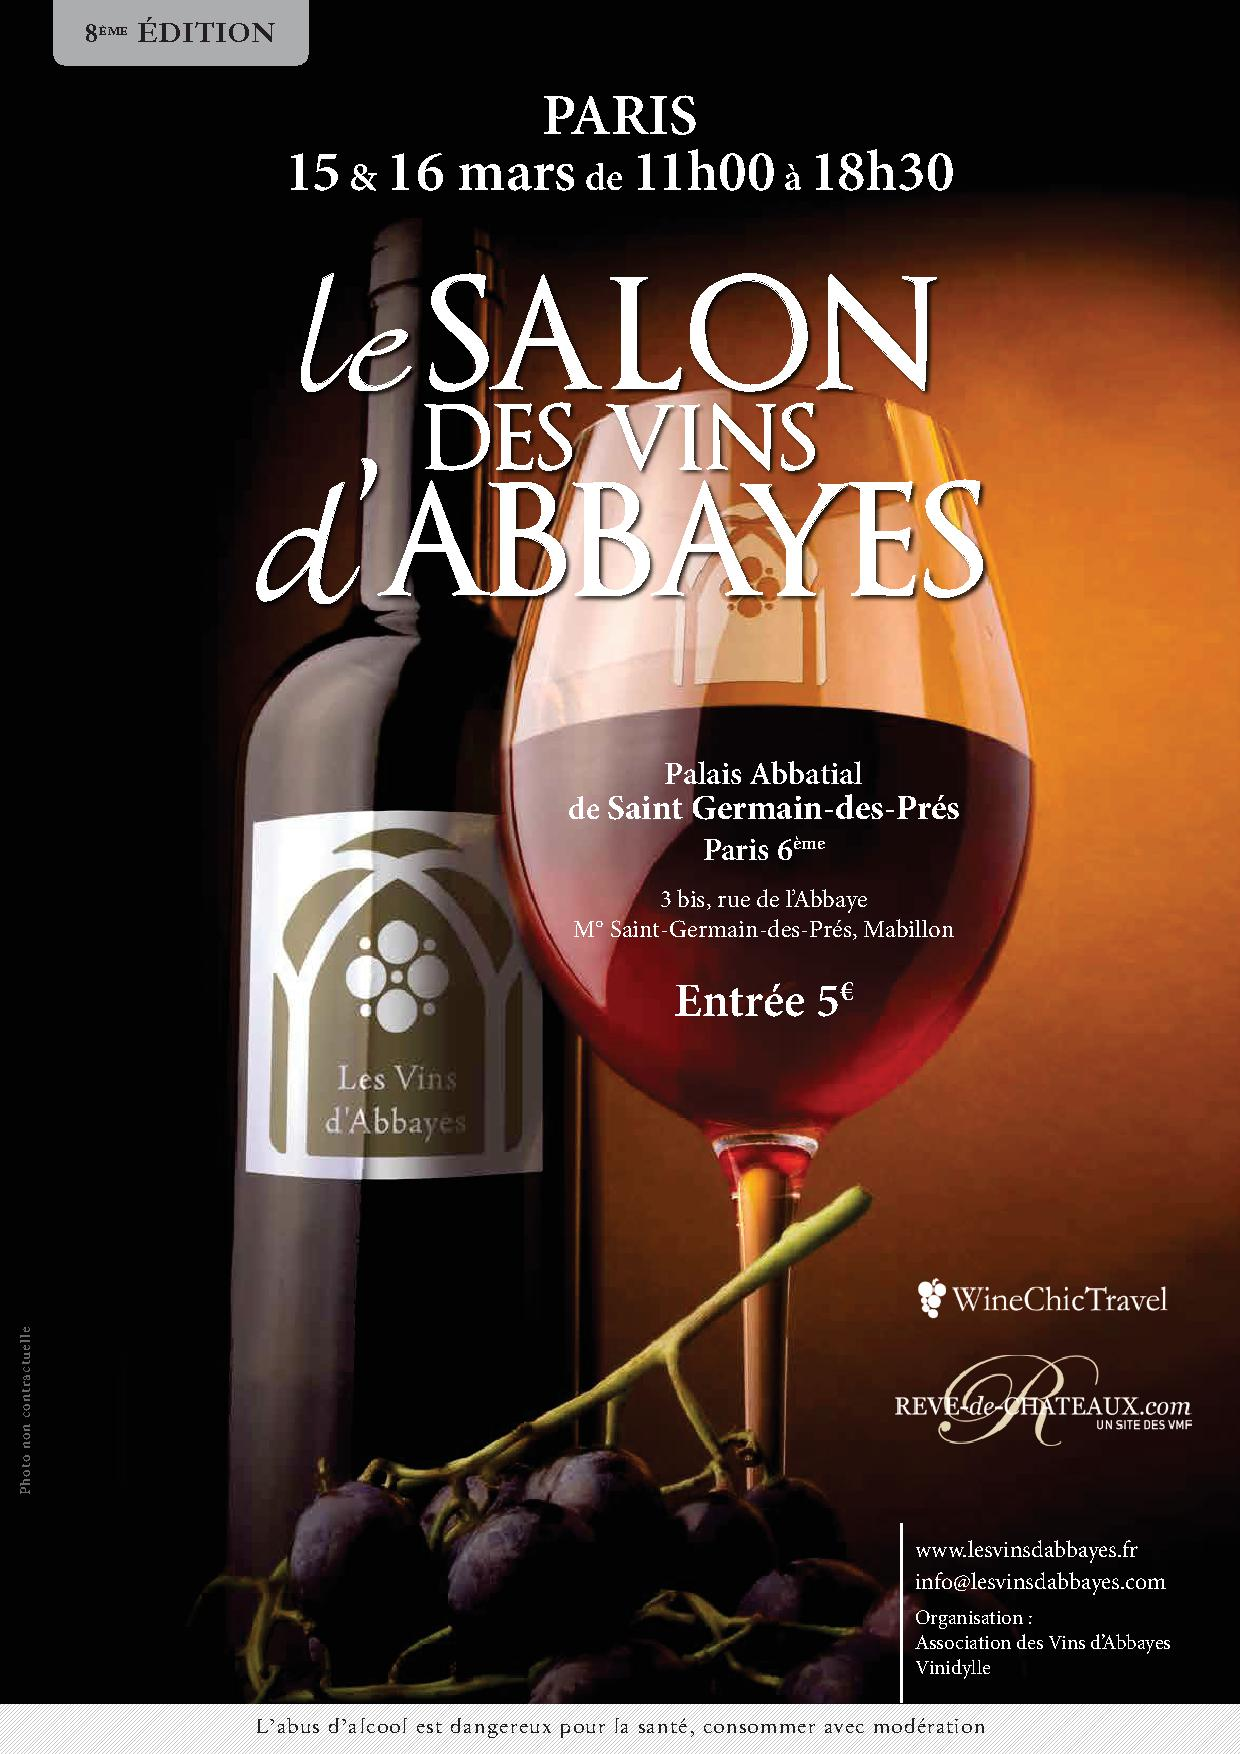 Salon des vins d 39 abbayes 8 me dition paris paris 6 me for Calendrier salon des vins